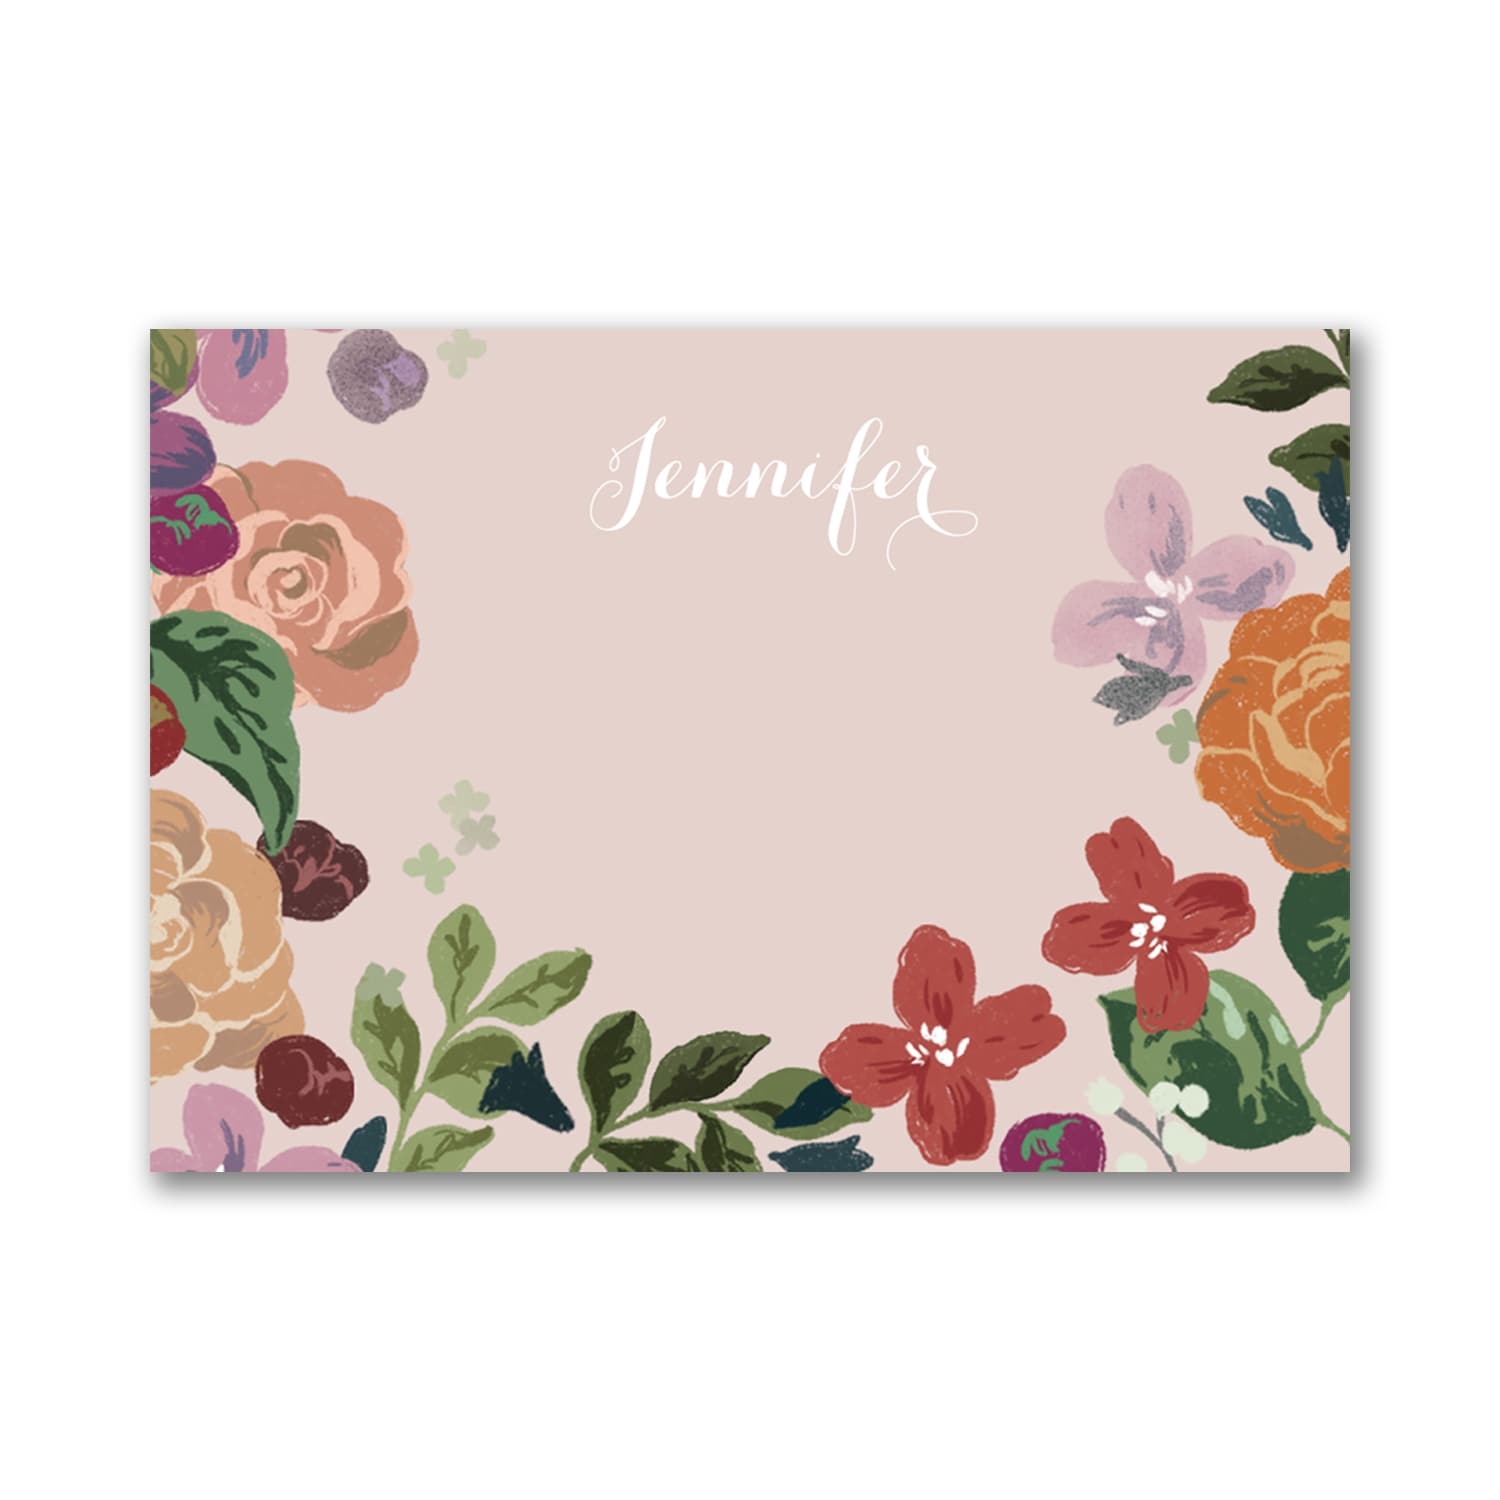 Boho Flowers Pink Post It Note Set Name Desk Accessories Carlson Craft Wedding Stationery Products North Mankato Mn